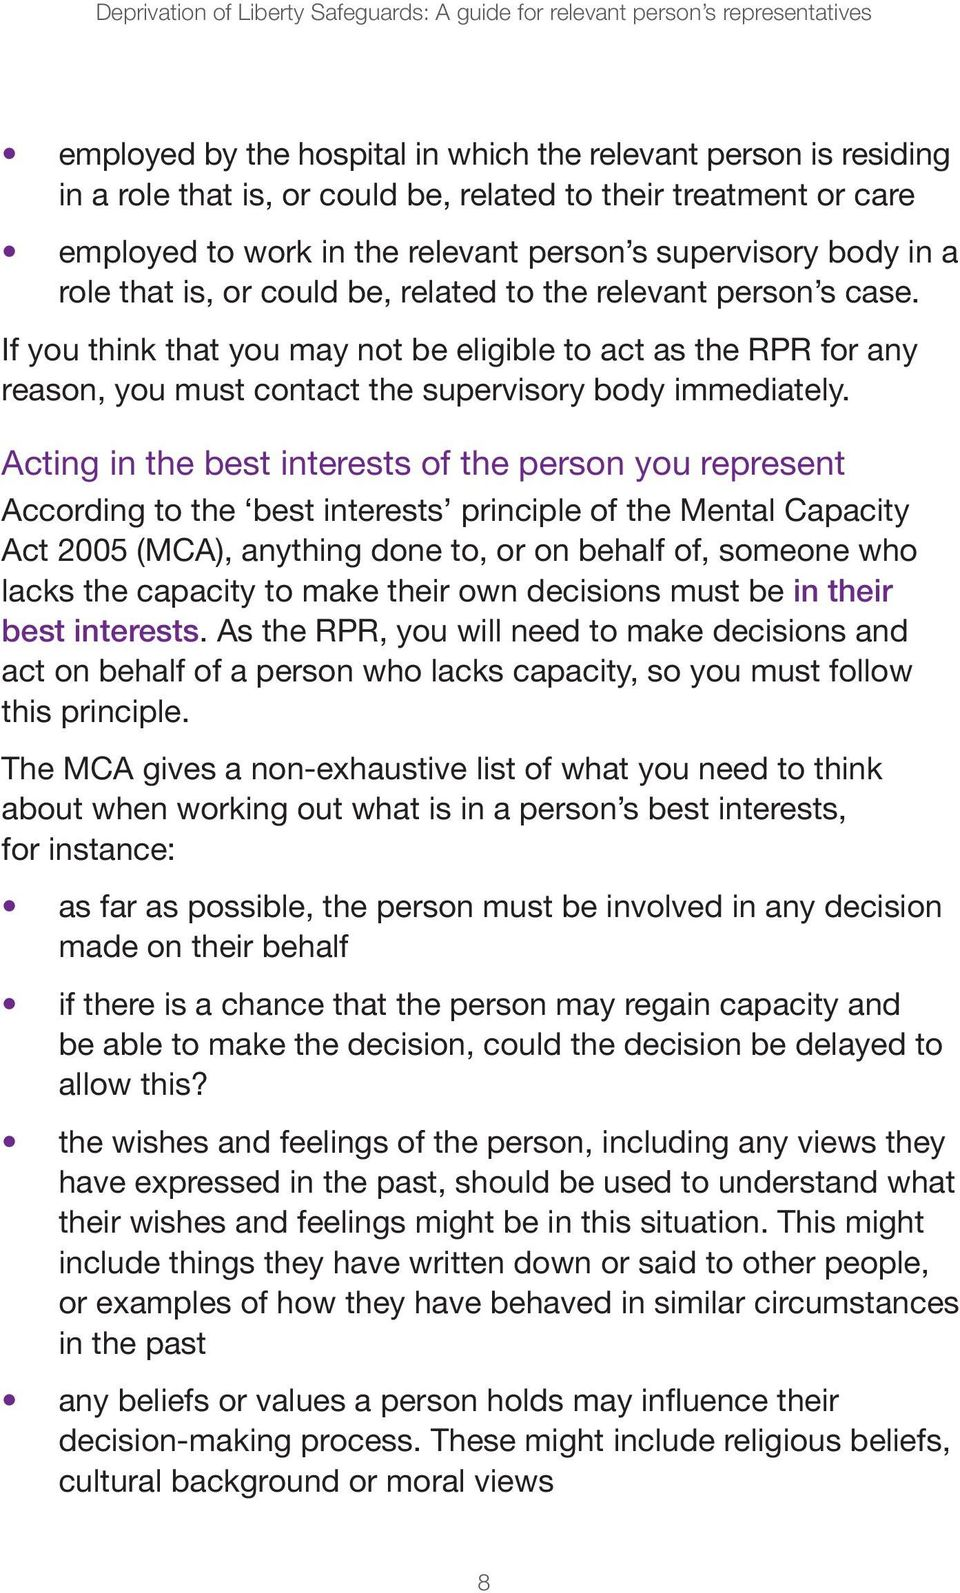 If you think that you may not be eligible to act as the RPR for any reason, you must contact the supervisory body immediately.